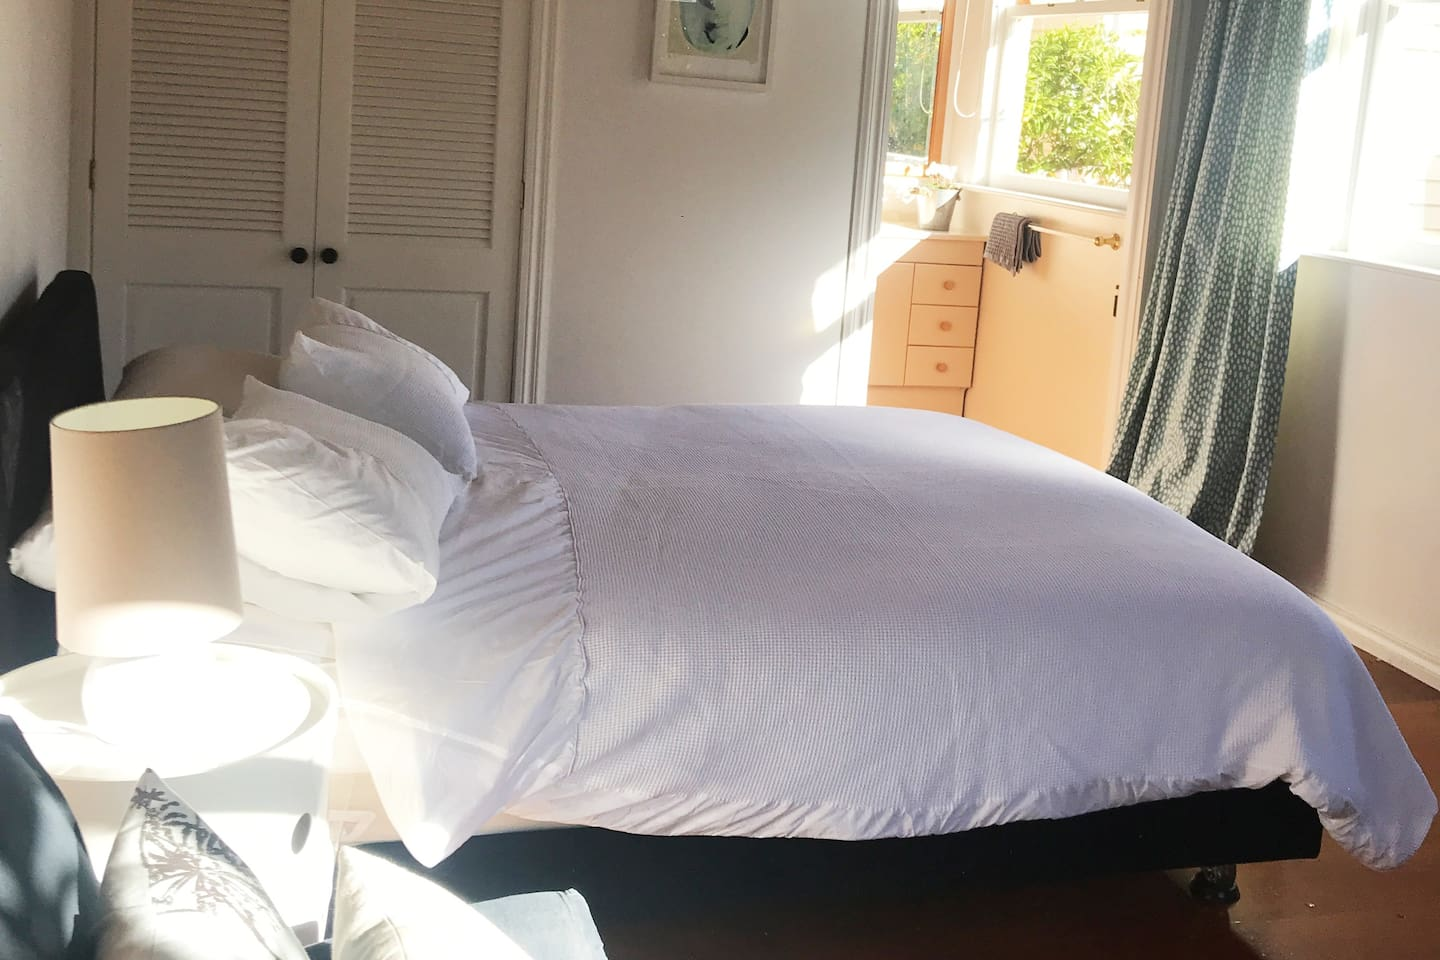 Simple, neat and clean, sleep well in our garden room with ensuite, wifi and netflix